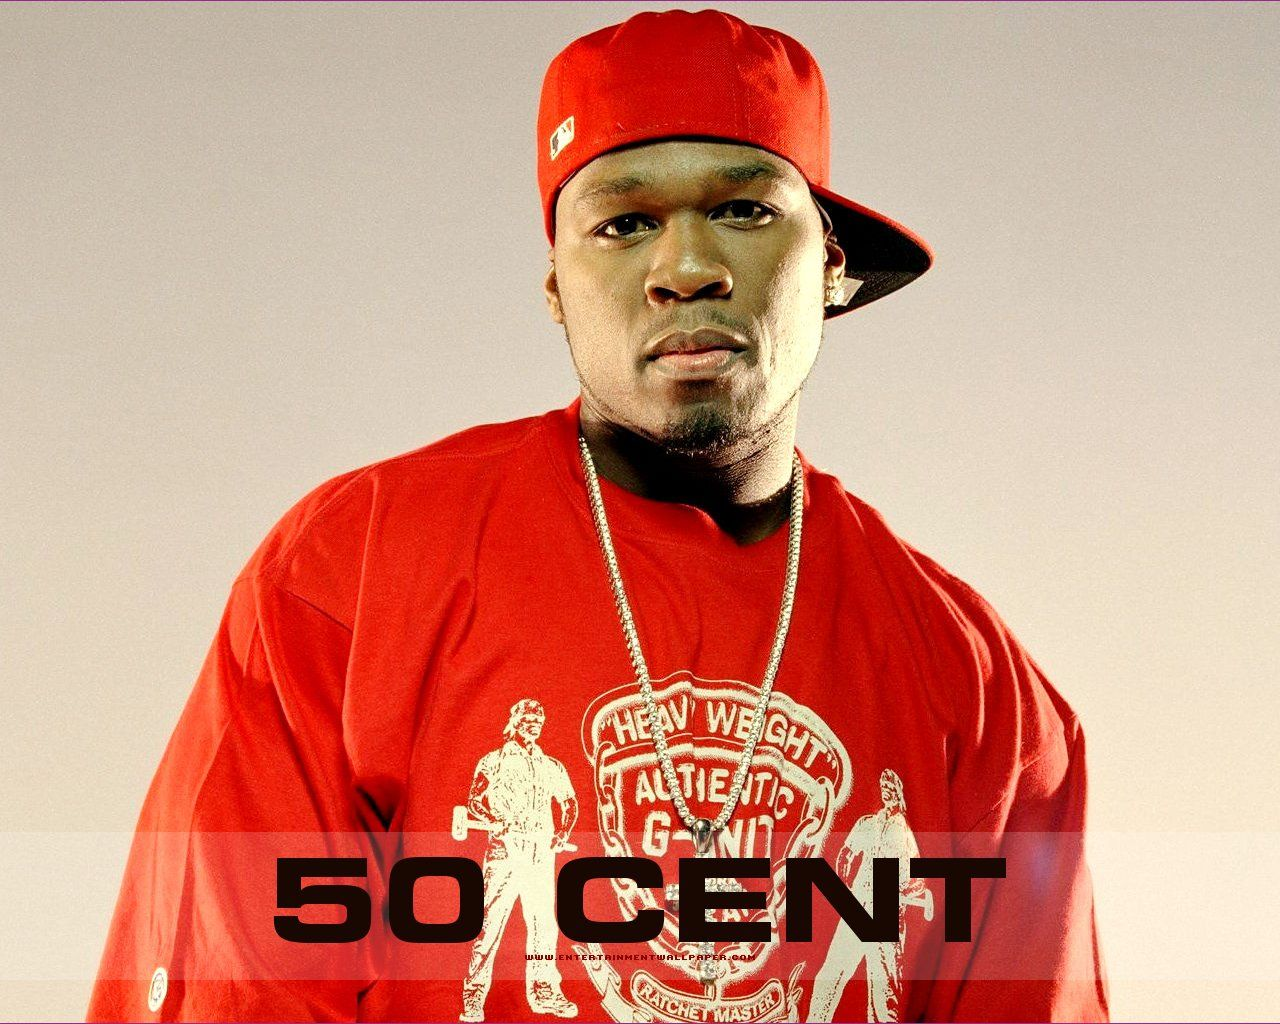 50 Cent Wallpapers Wallpapers All Superior 50 Cent Wallpapers Backgrounds Wallpapersplanet Net